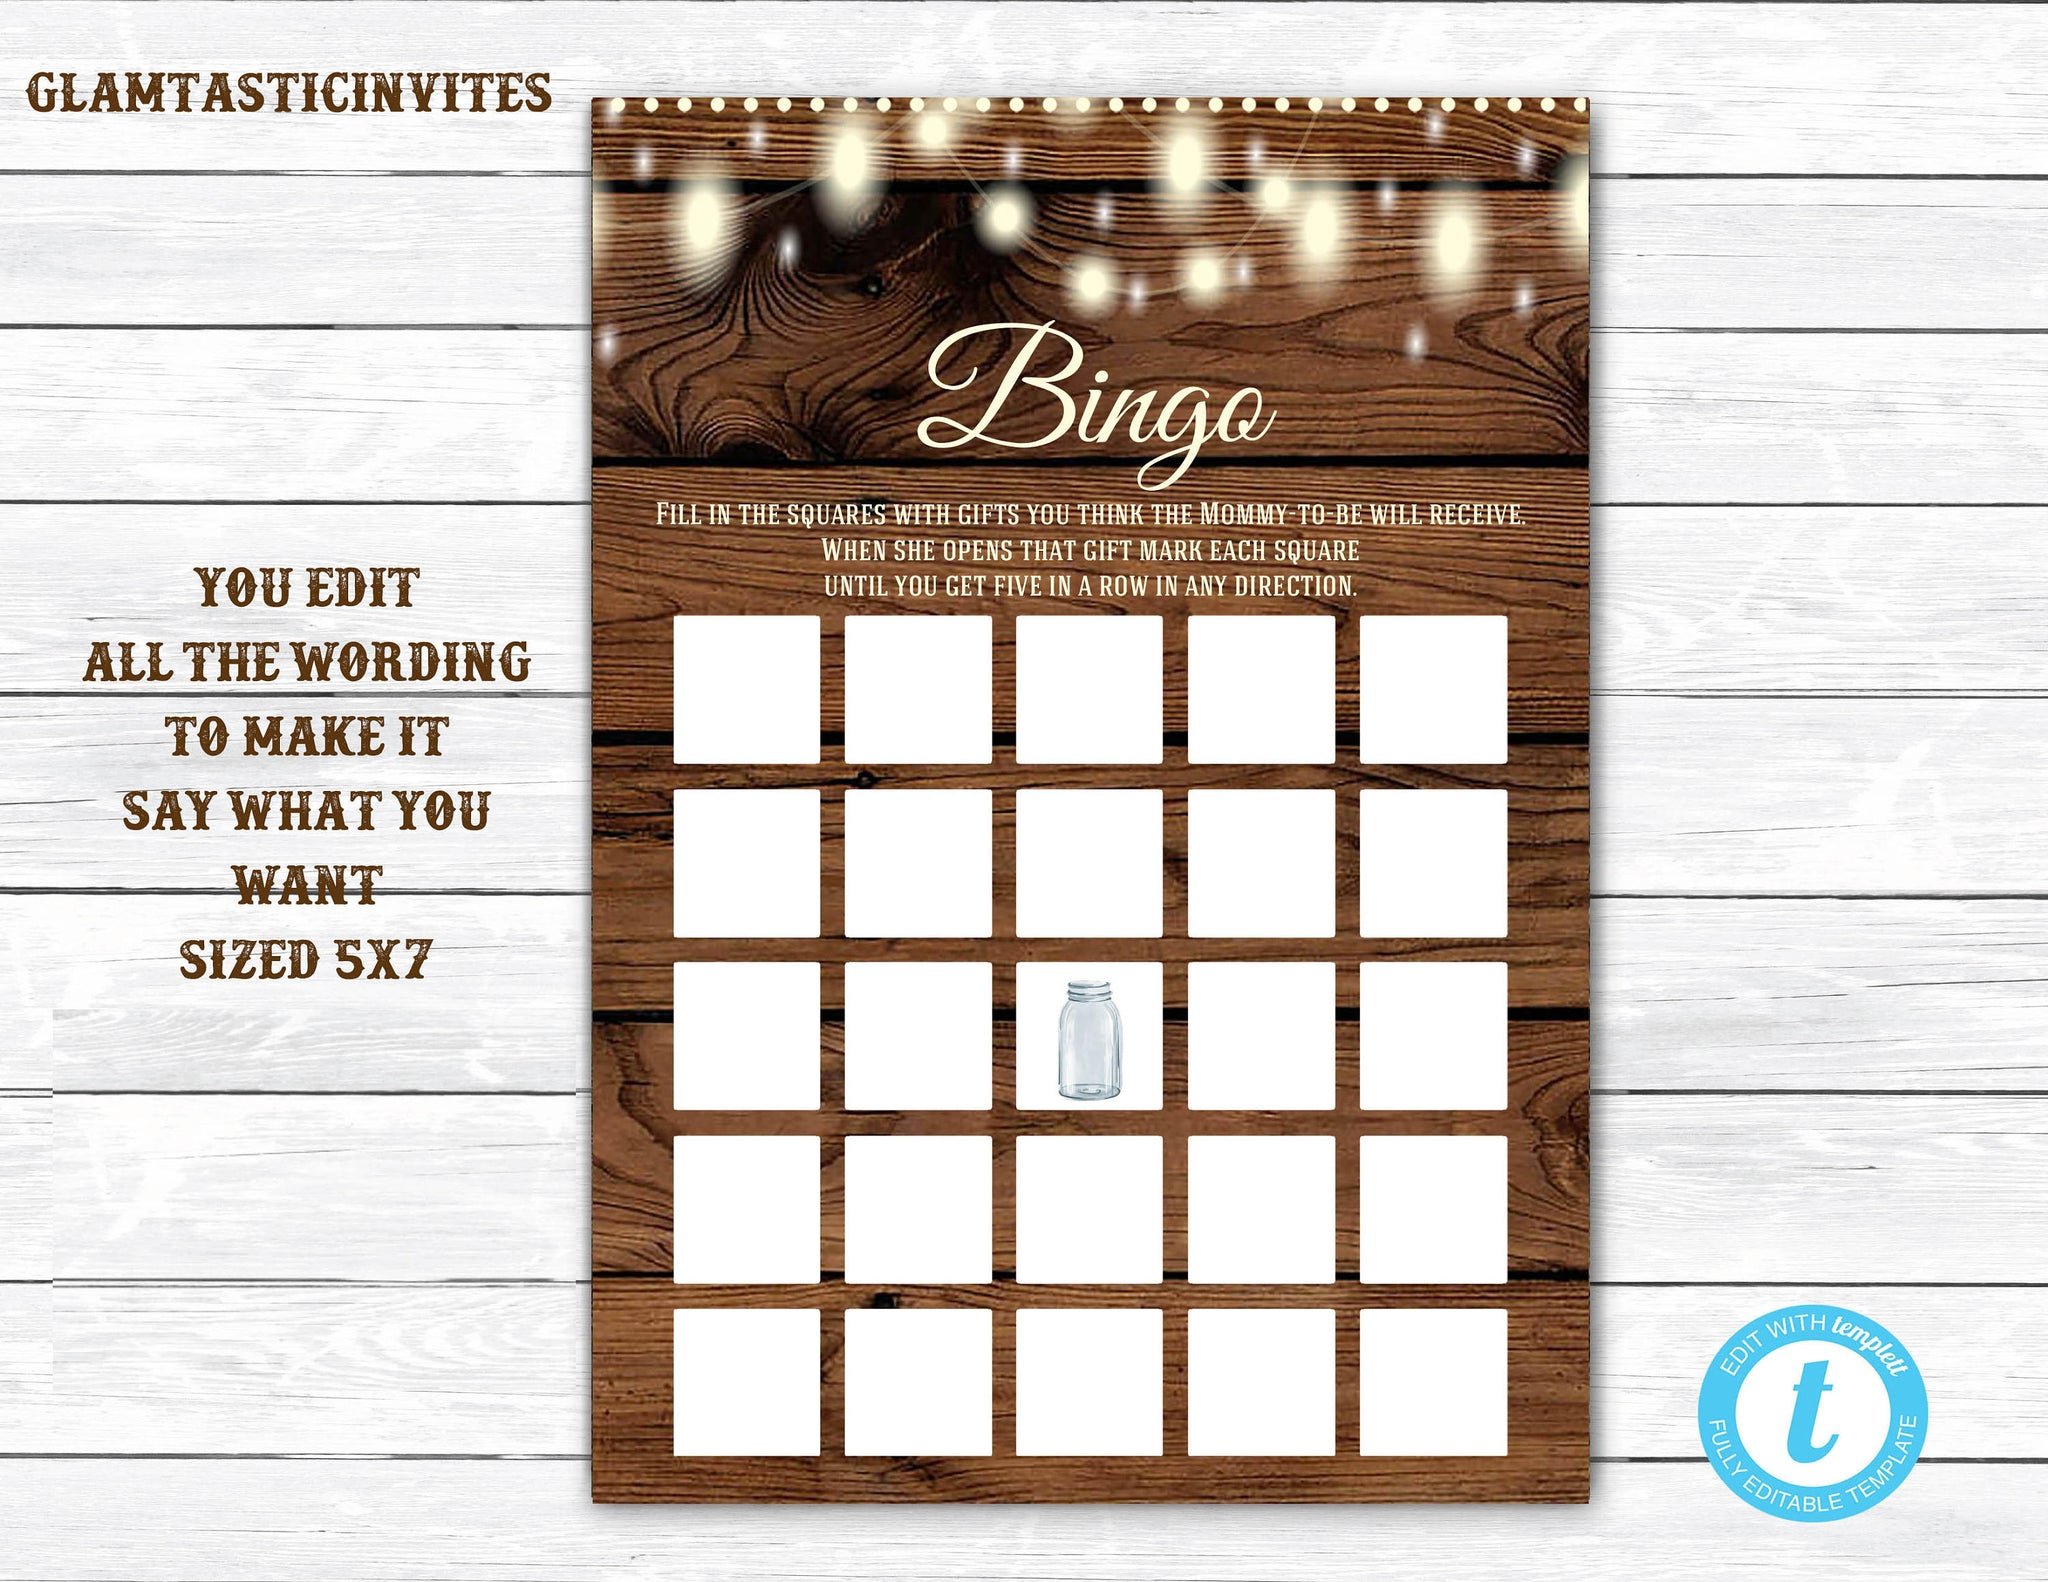 Bingo, Baby Shower BINGO, Rustic Bingo, Rustic Baby Shower, Baby Shower Bingo, Baby Shower Game, Bingo Template, Instant Download, Template